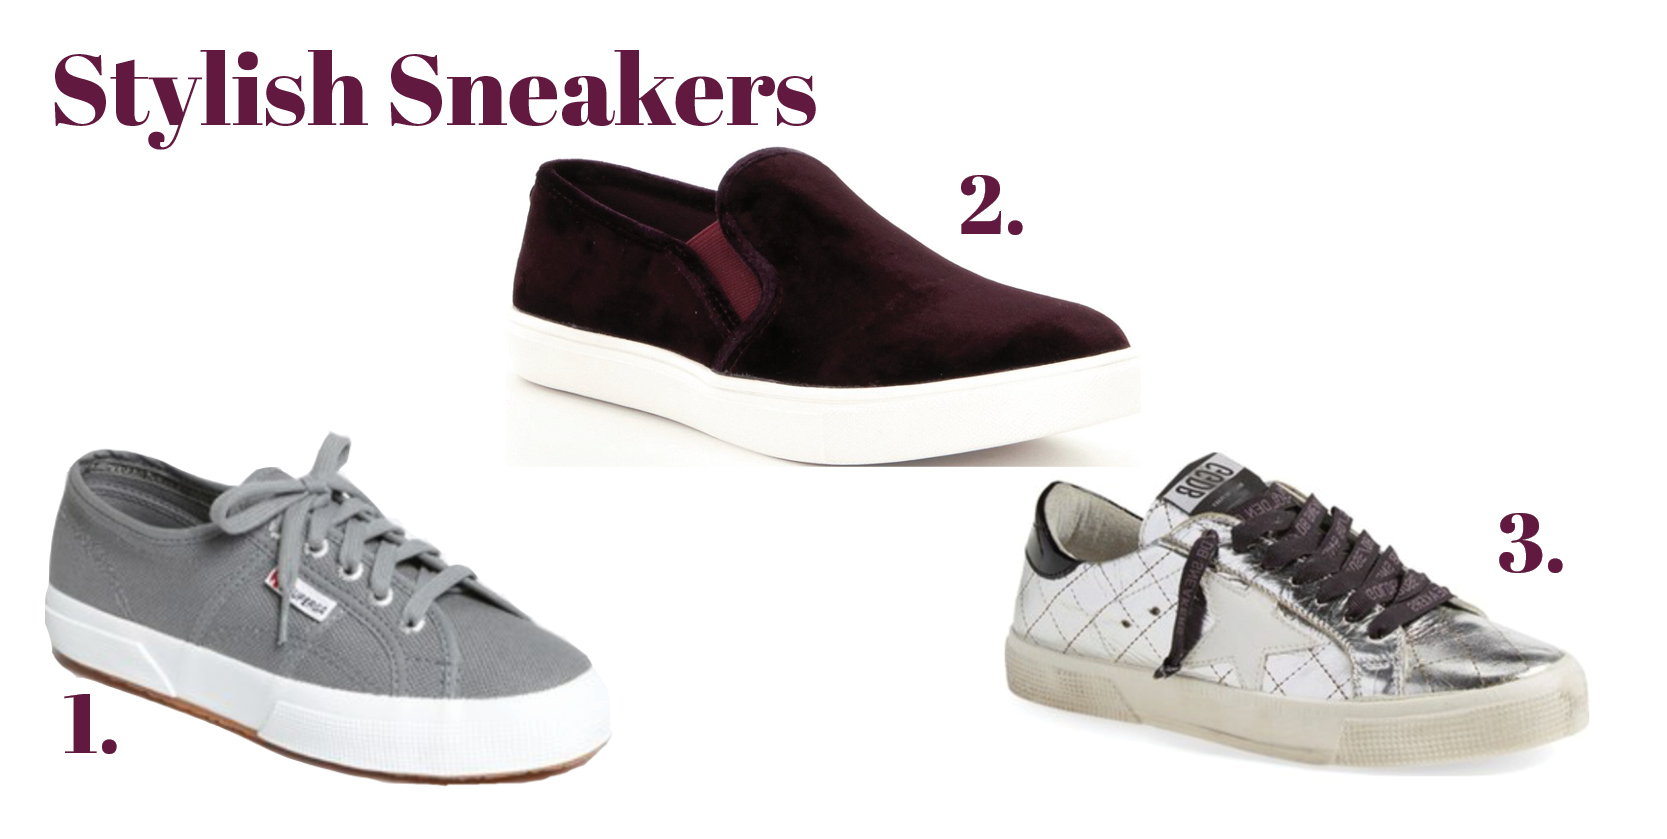 stylish-sneakers-9.jpg